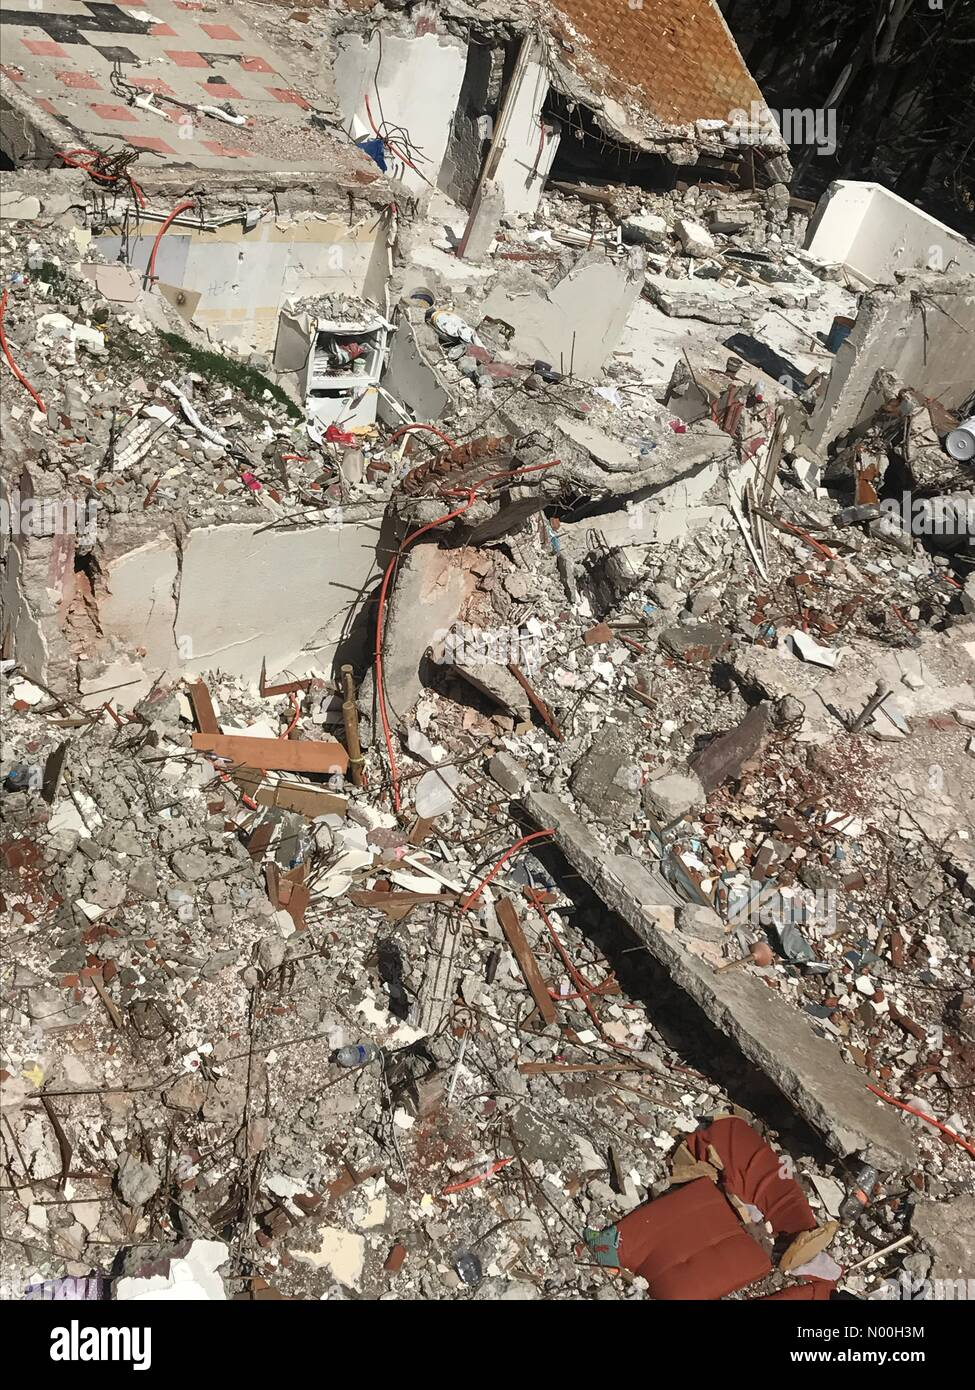 Mexico City, Mexico. 6th Oct, 2017. The rubble of a building that collapsed in Amsterdam & Laredo streets after Stock Photo